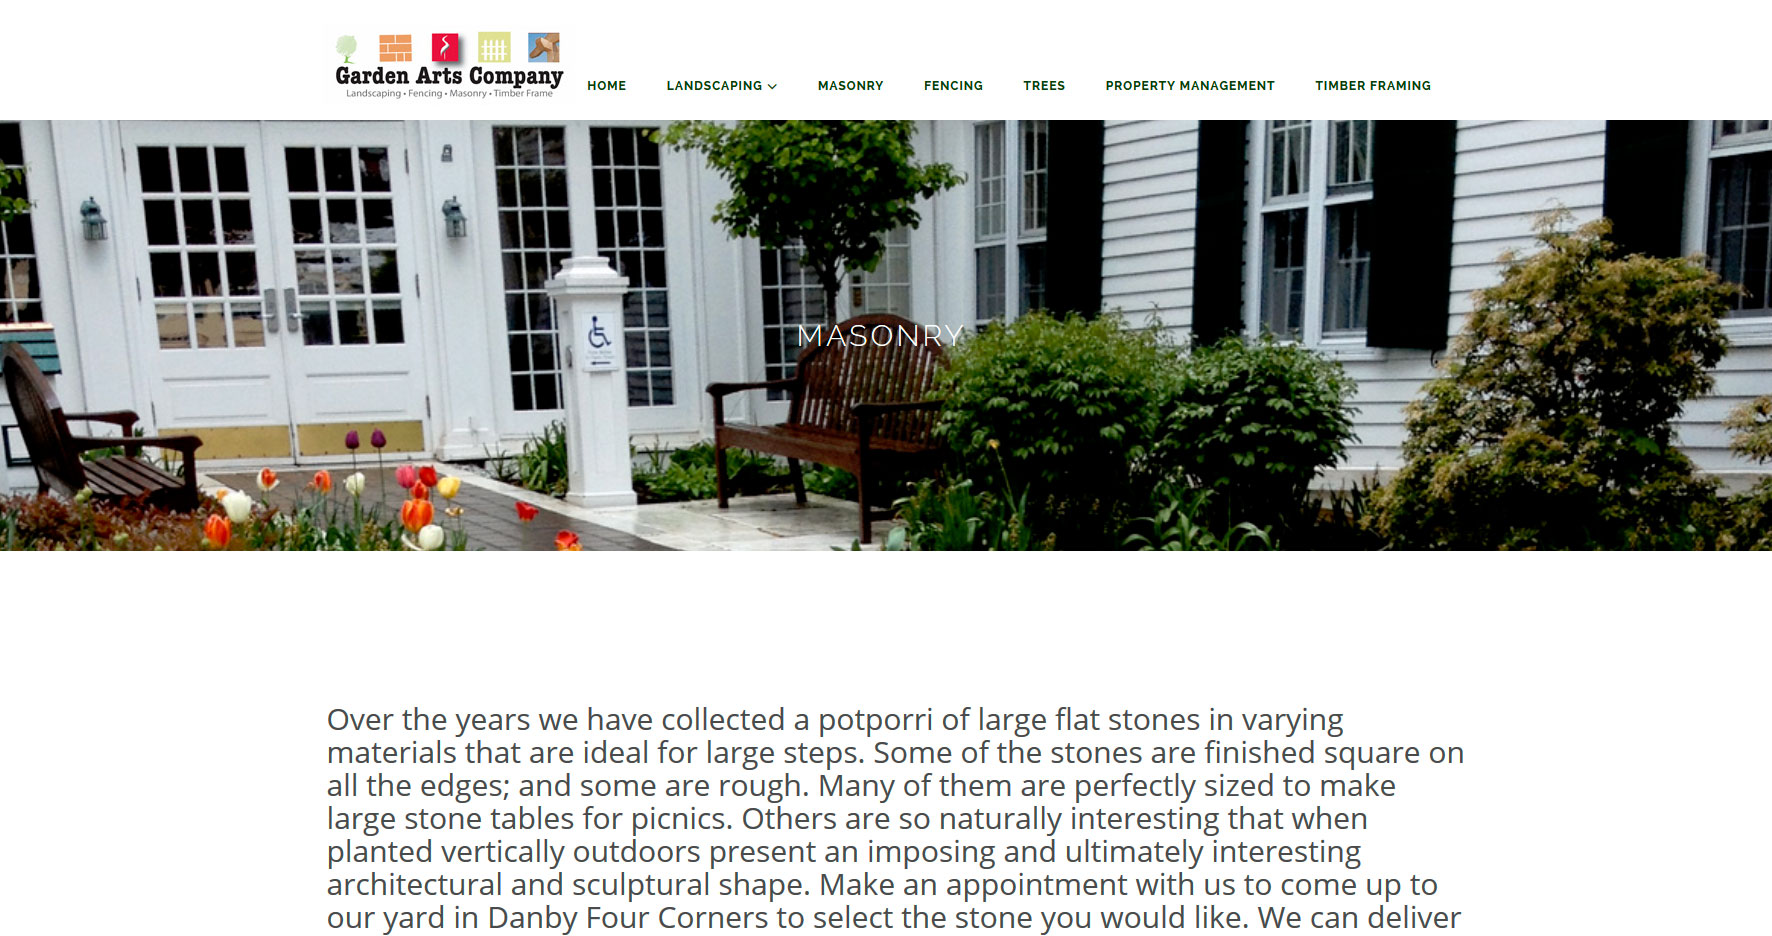 Website design vermont garden arts for Gardening jobs manchester